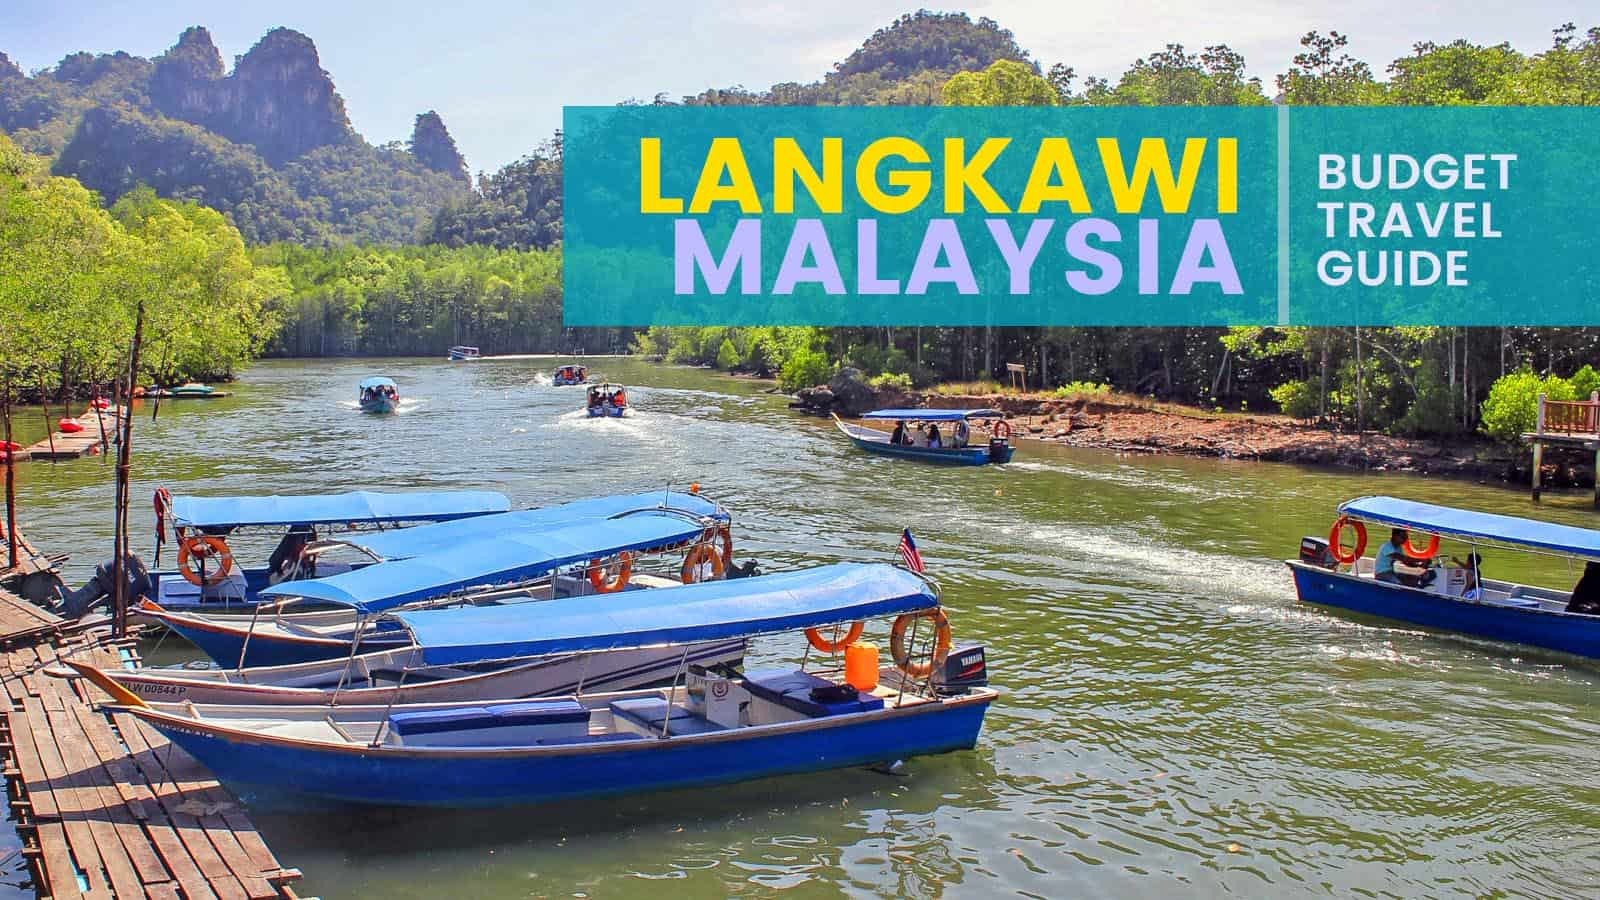 Cheap flight to Langkawi International Airport (LGK)